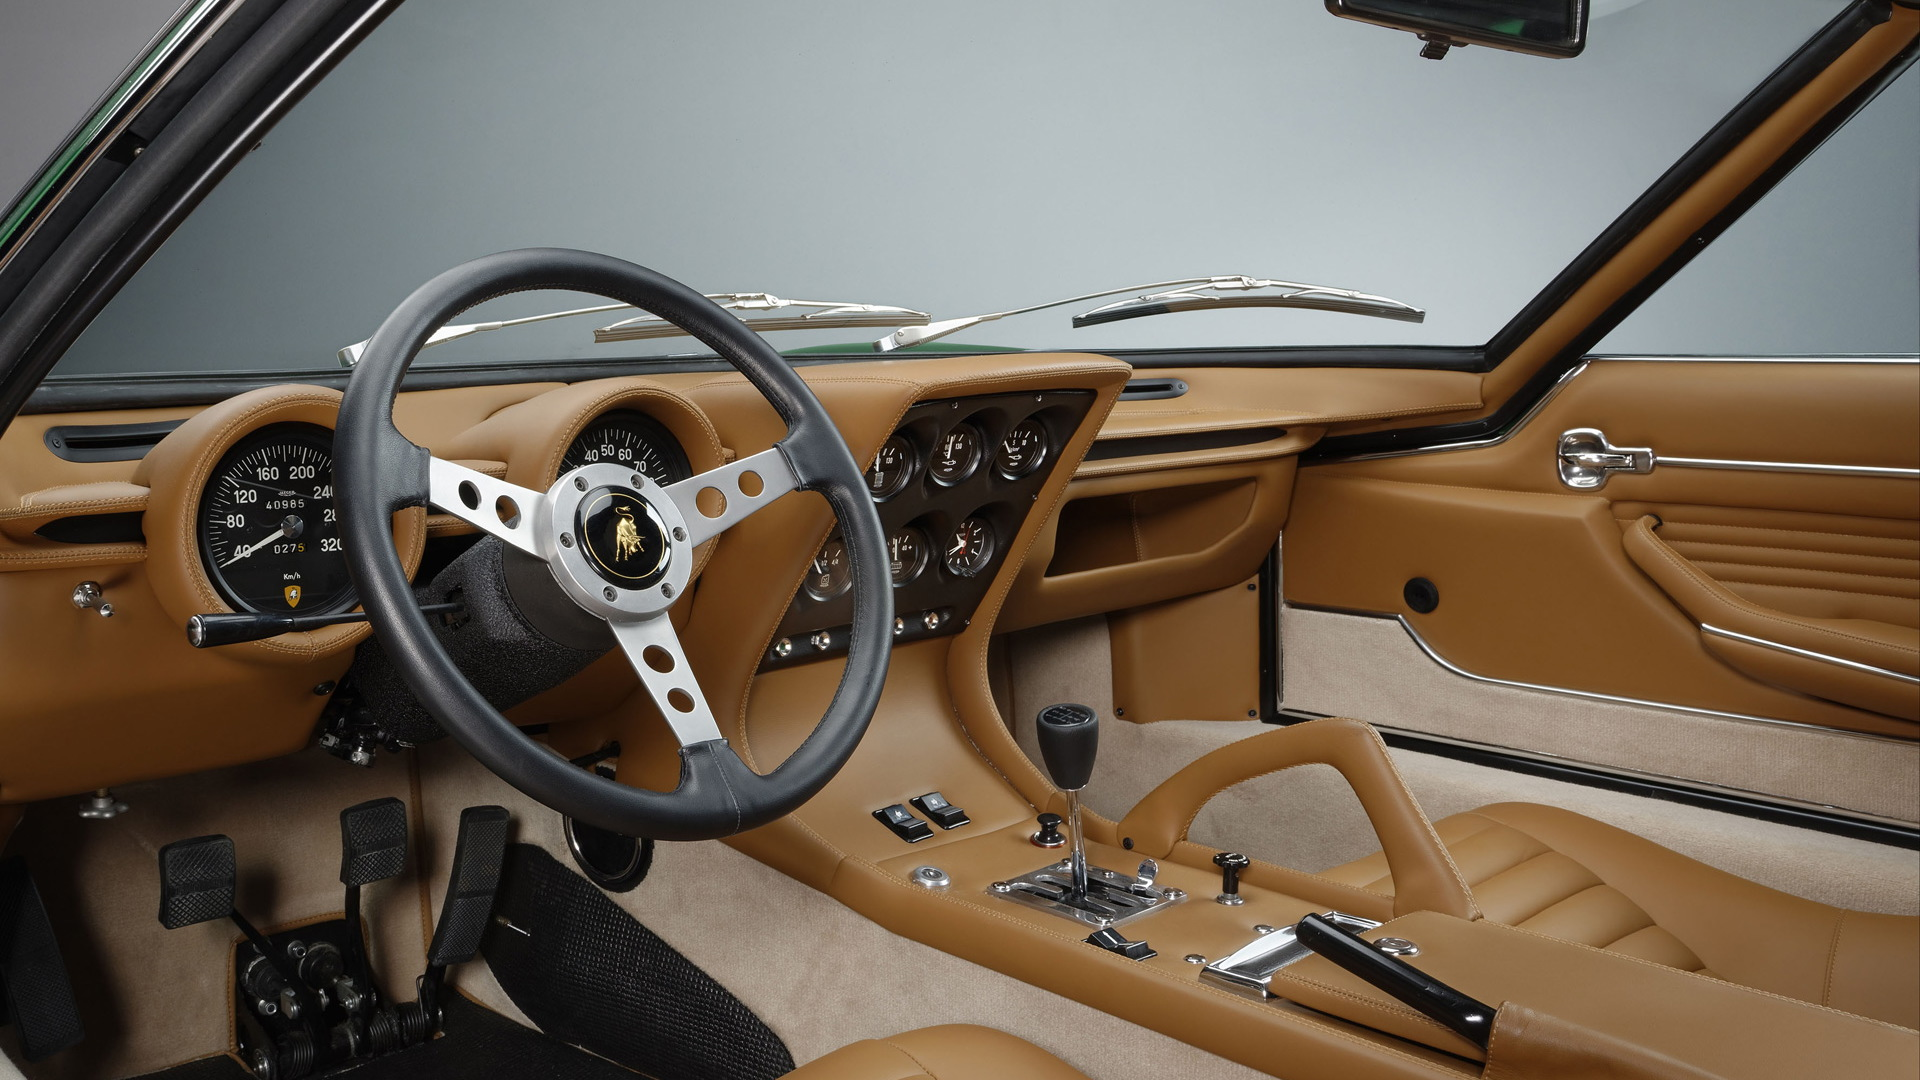 1971 Lamborghini Miura SV pre-production restored by Polo Storico